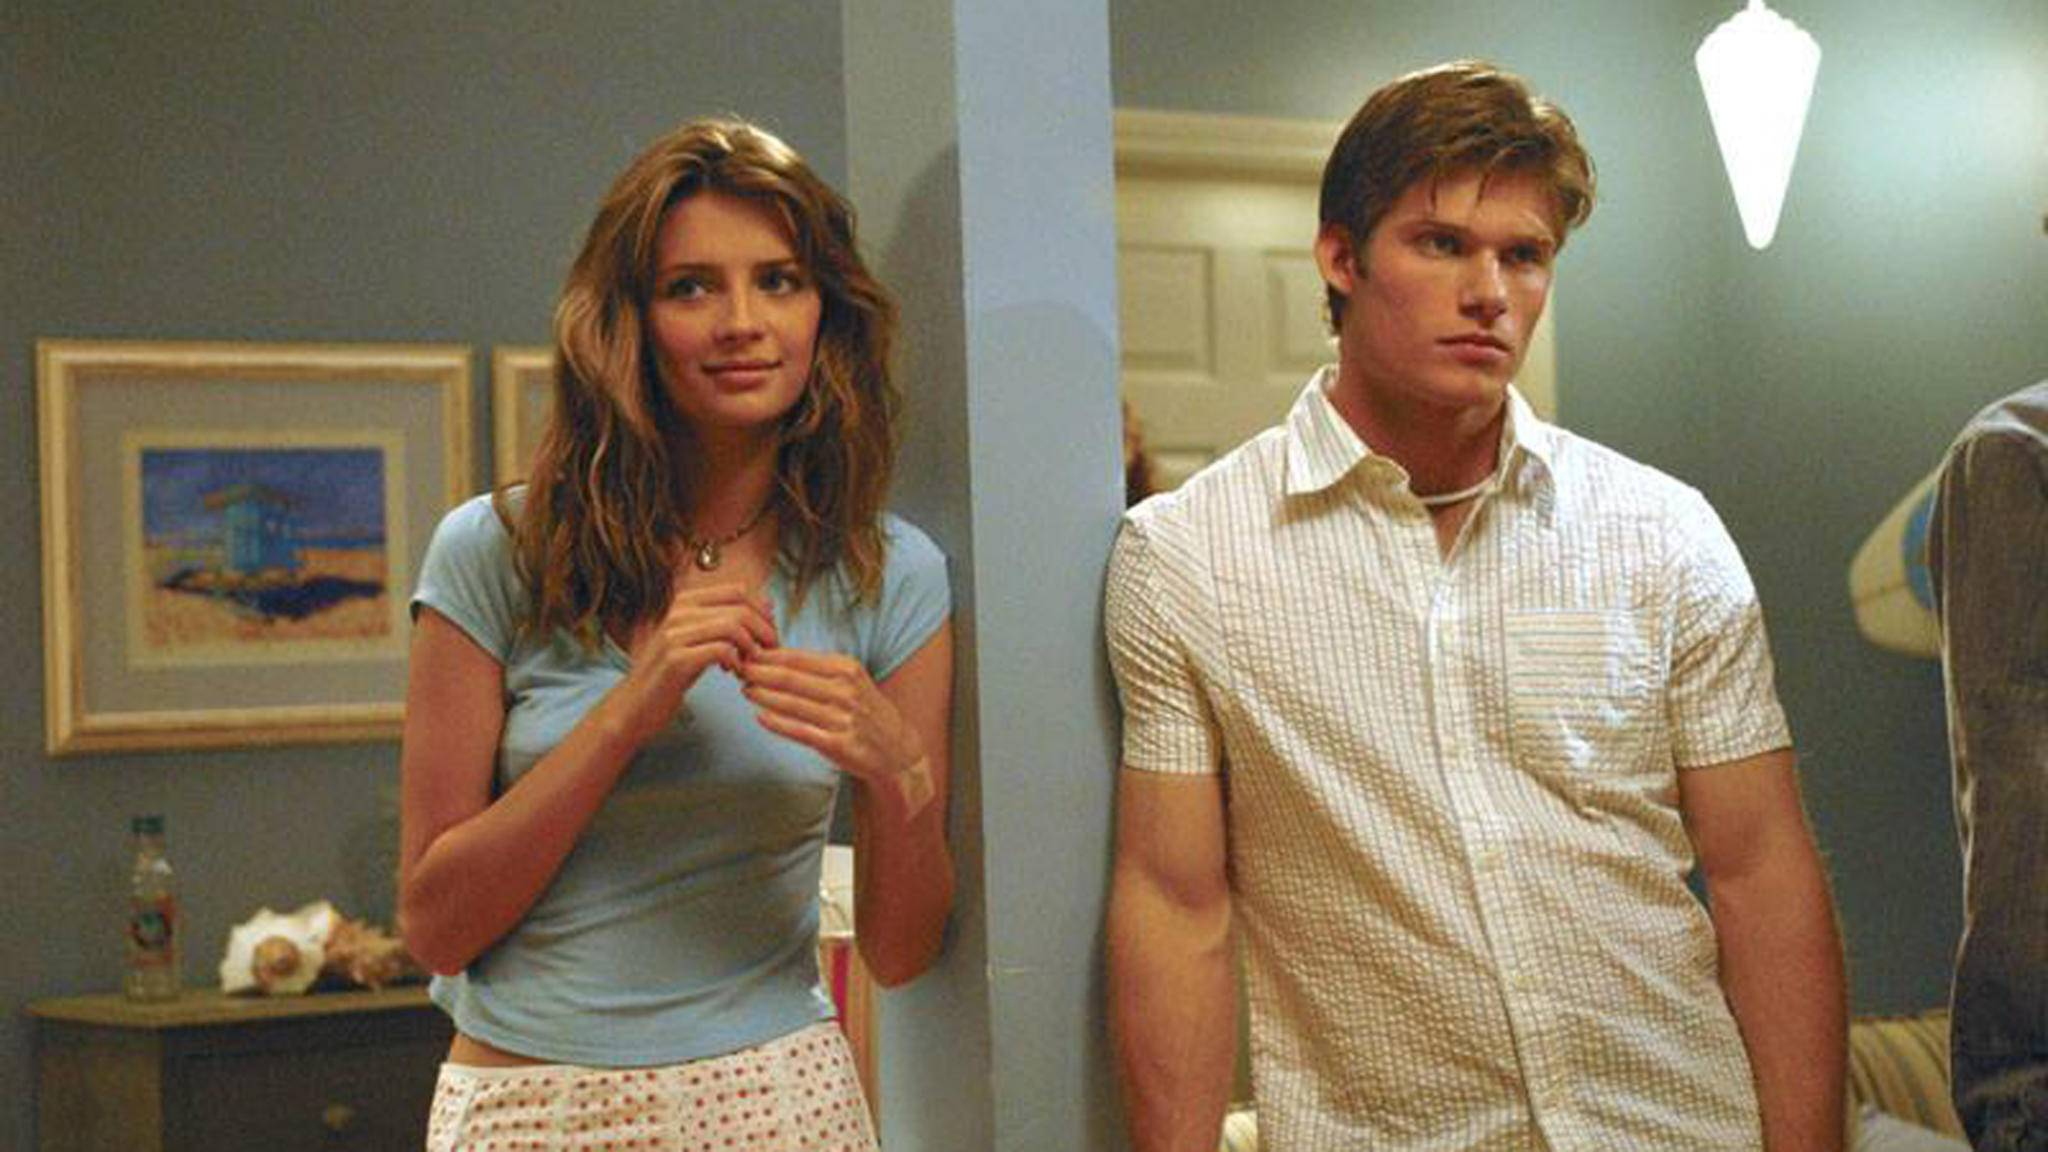 """Welcome to the OC, bi***"": Dieser Satz war typisch für Chris Carmack als Luke in der Serie ""O.C., California""."